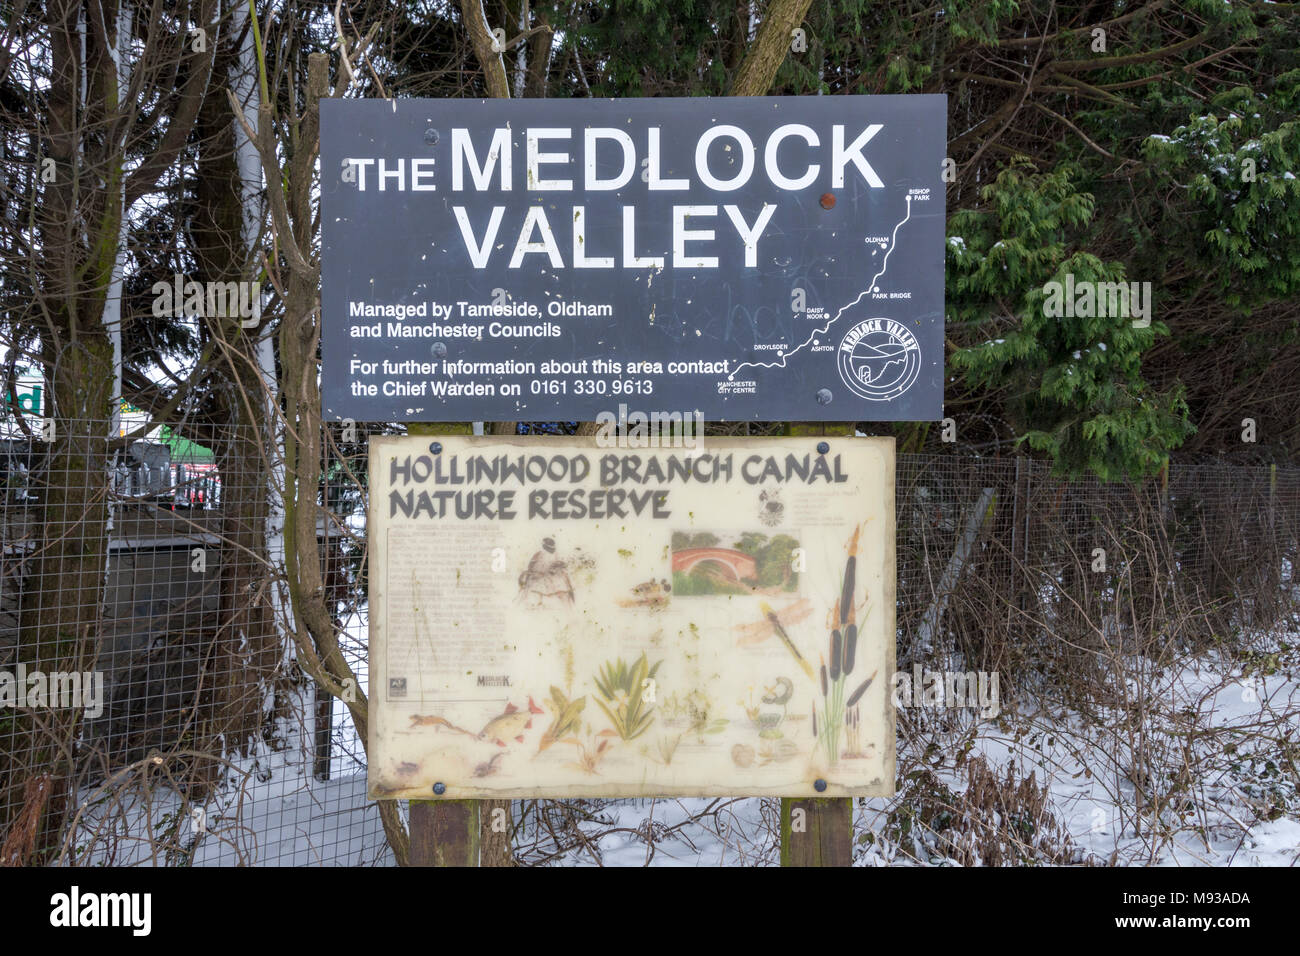 Signs at the Hollinwood Branch Canal Nature Reserve, Tameside, Manchester, England, UK - Stock Image